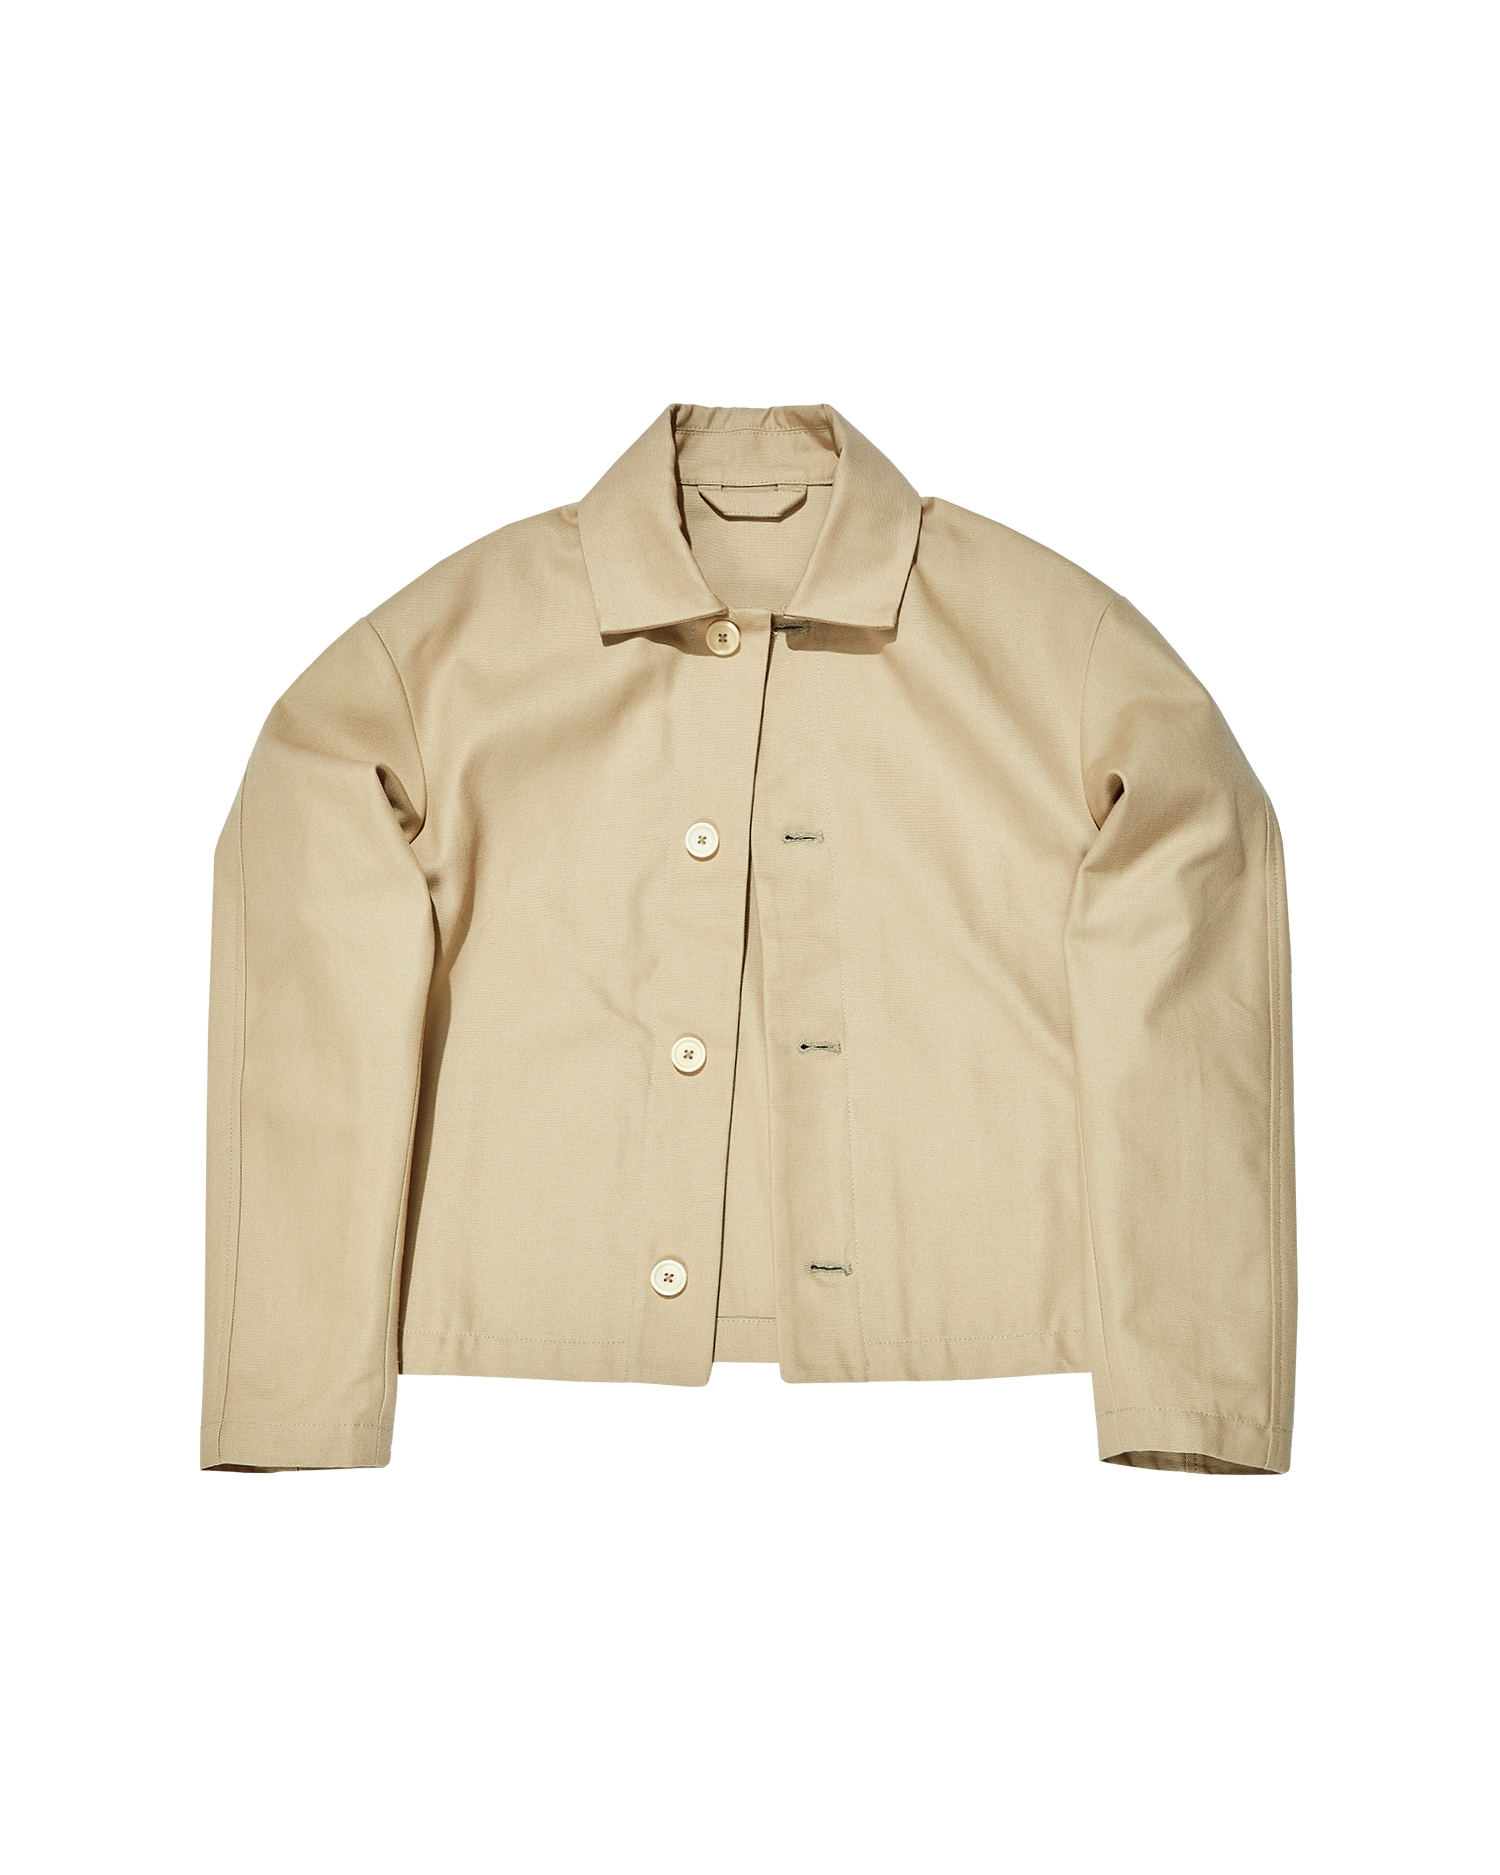 Shop Khaki Worker Jacket In Duck Canvas. Made In USA.